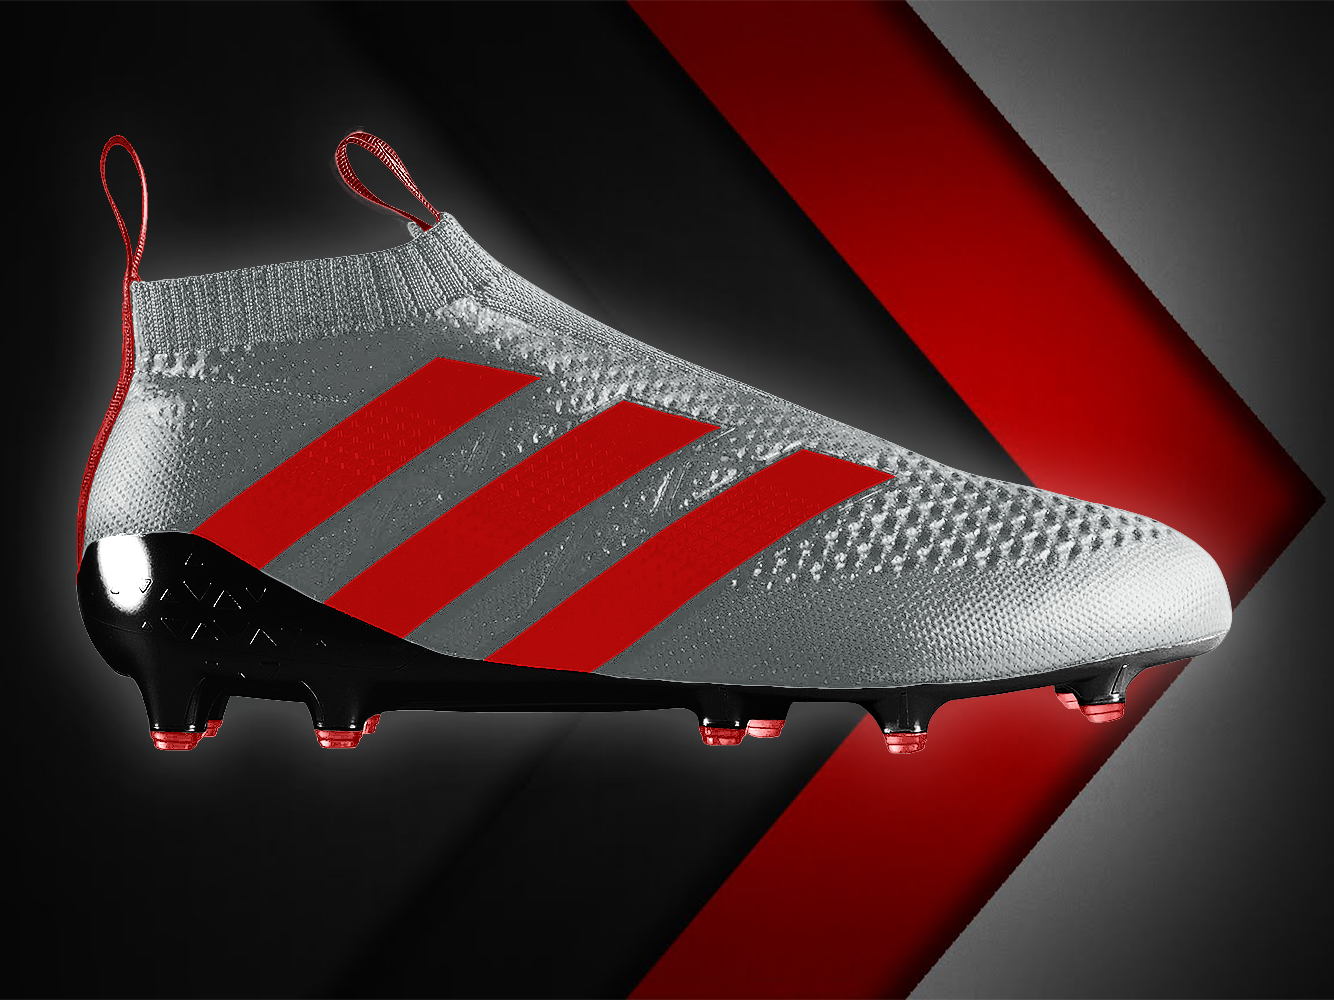 Adidas Ace 16+ SilverRedBlack by Peter Farrelly on Dribbble